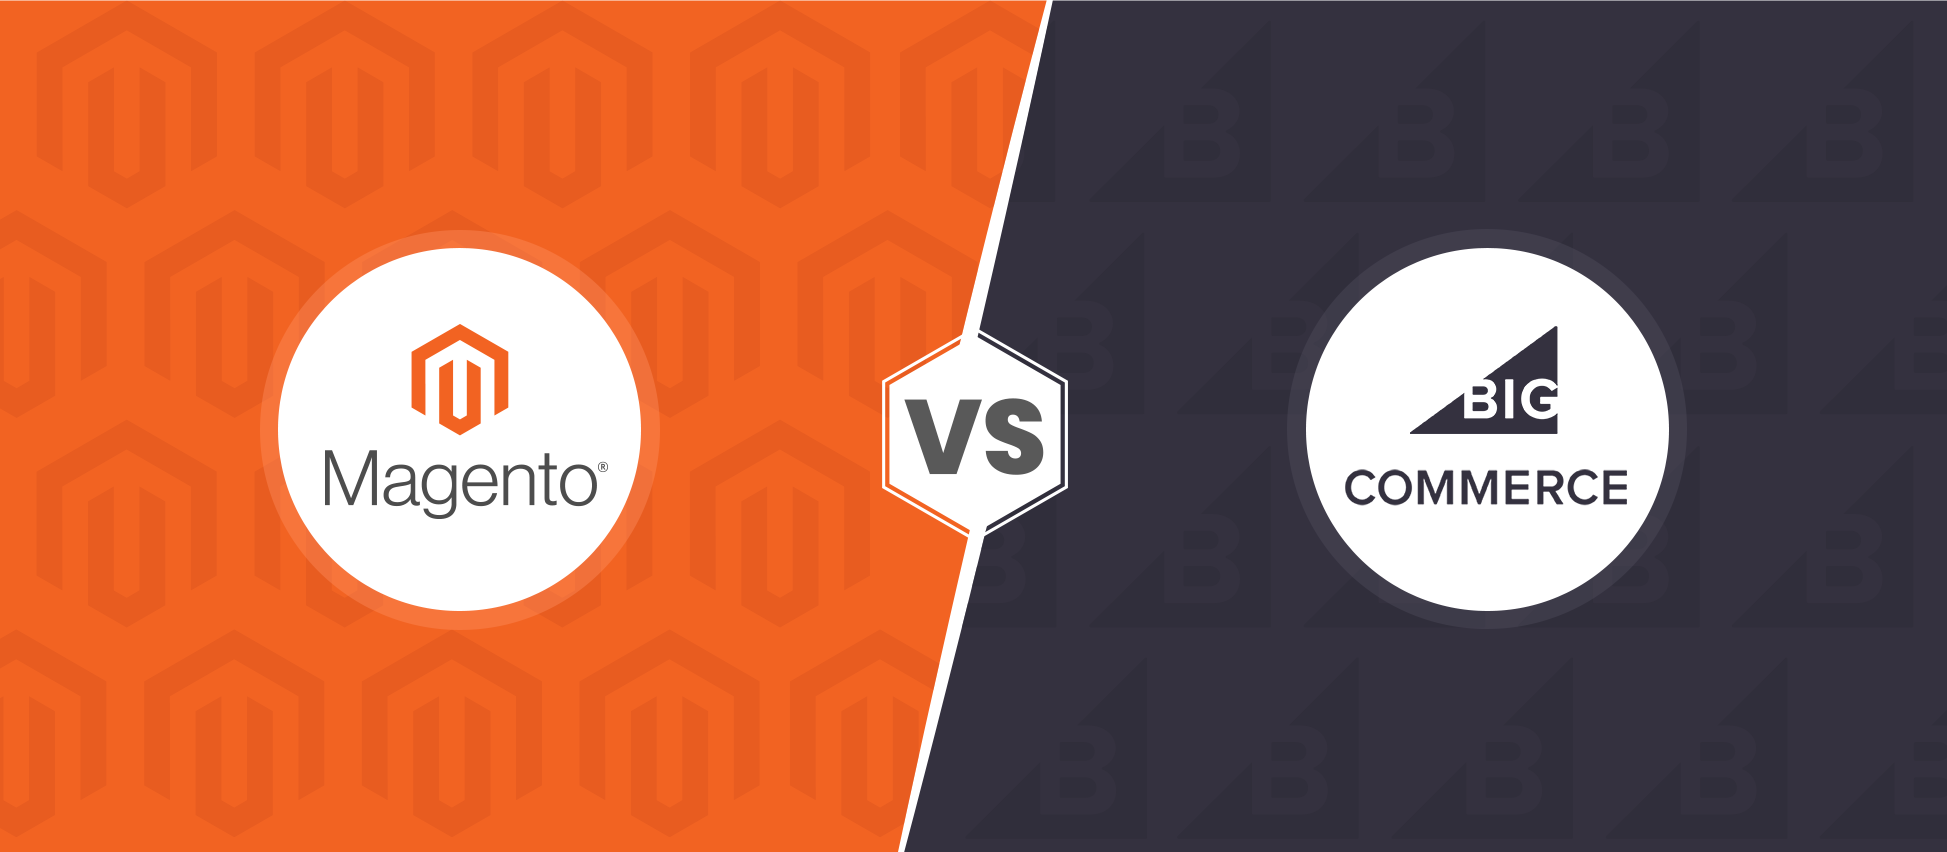 BigCommerce vs Magento: Who Wins the Fight?